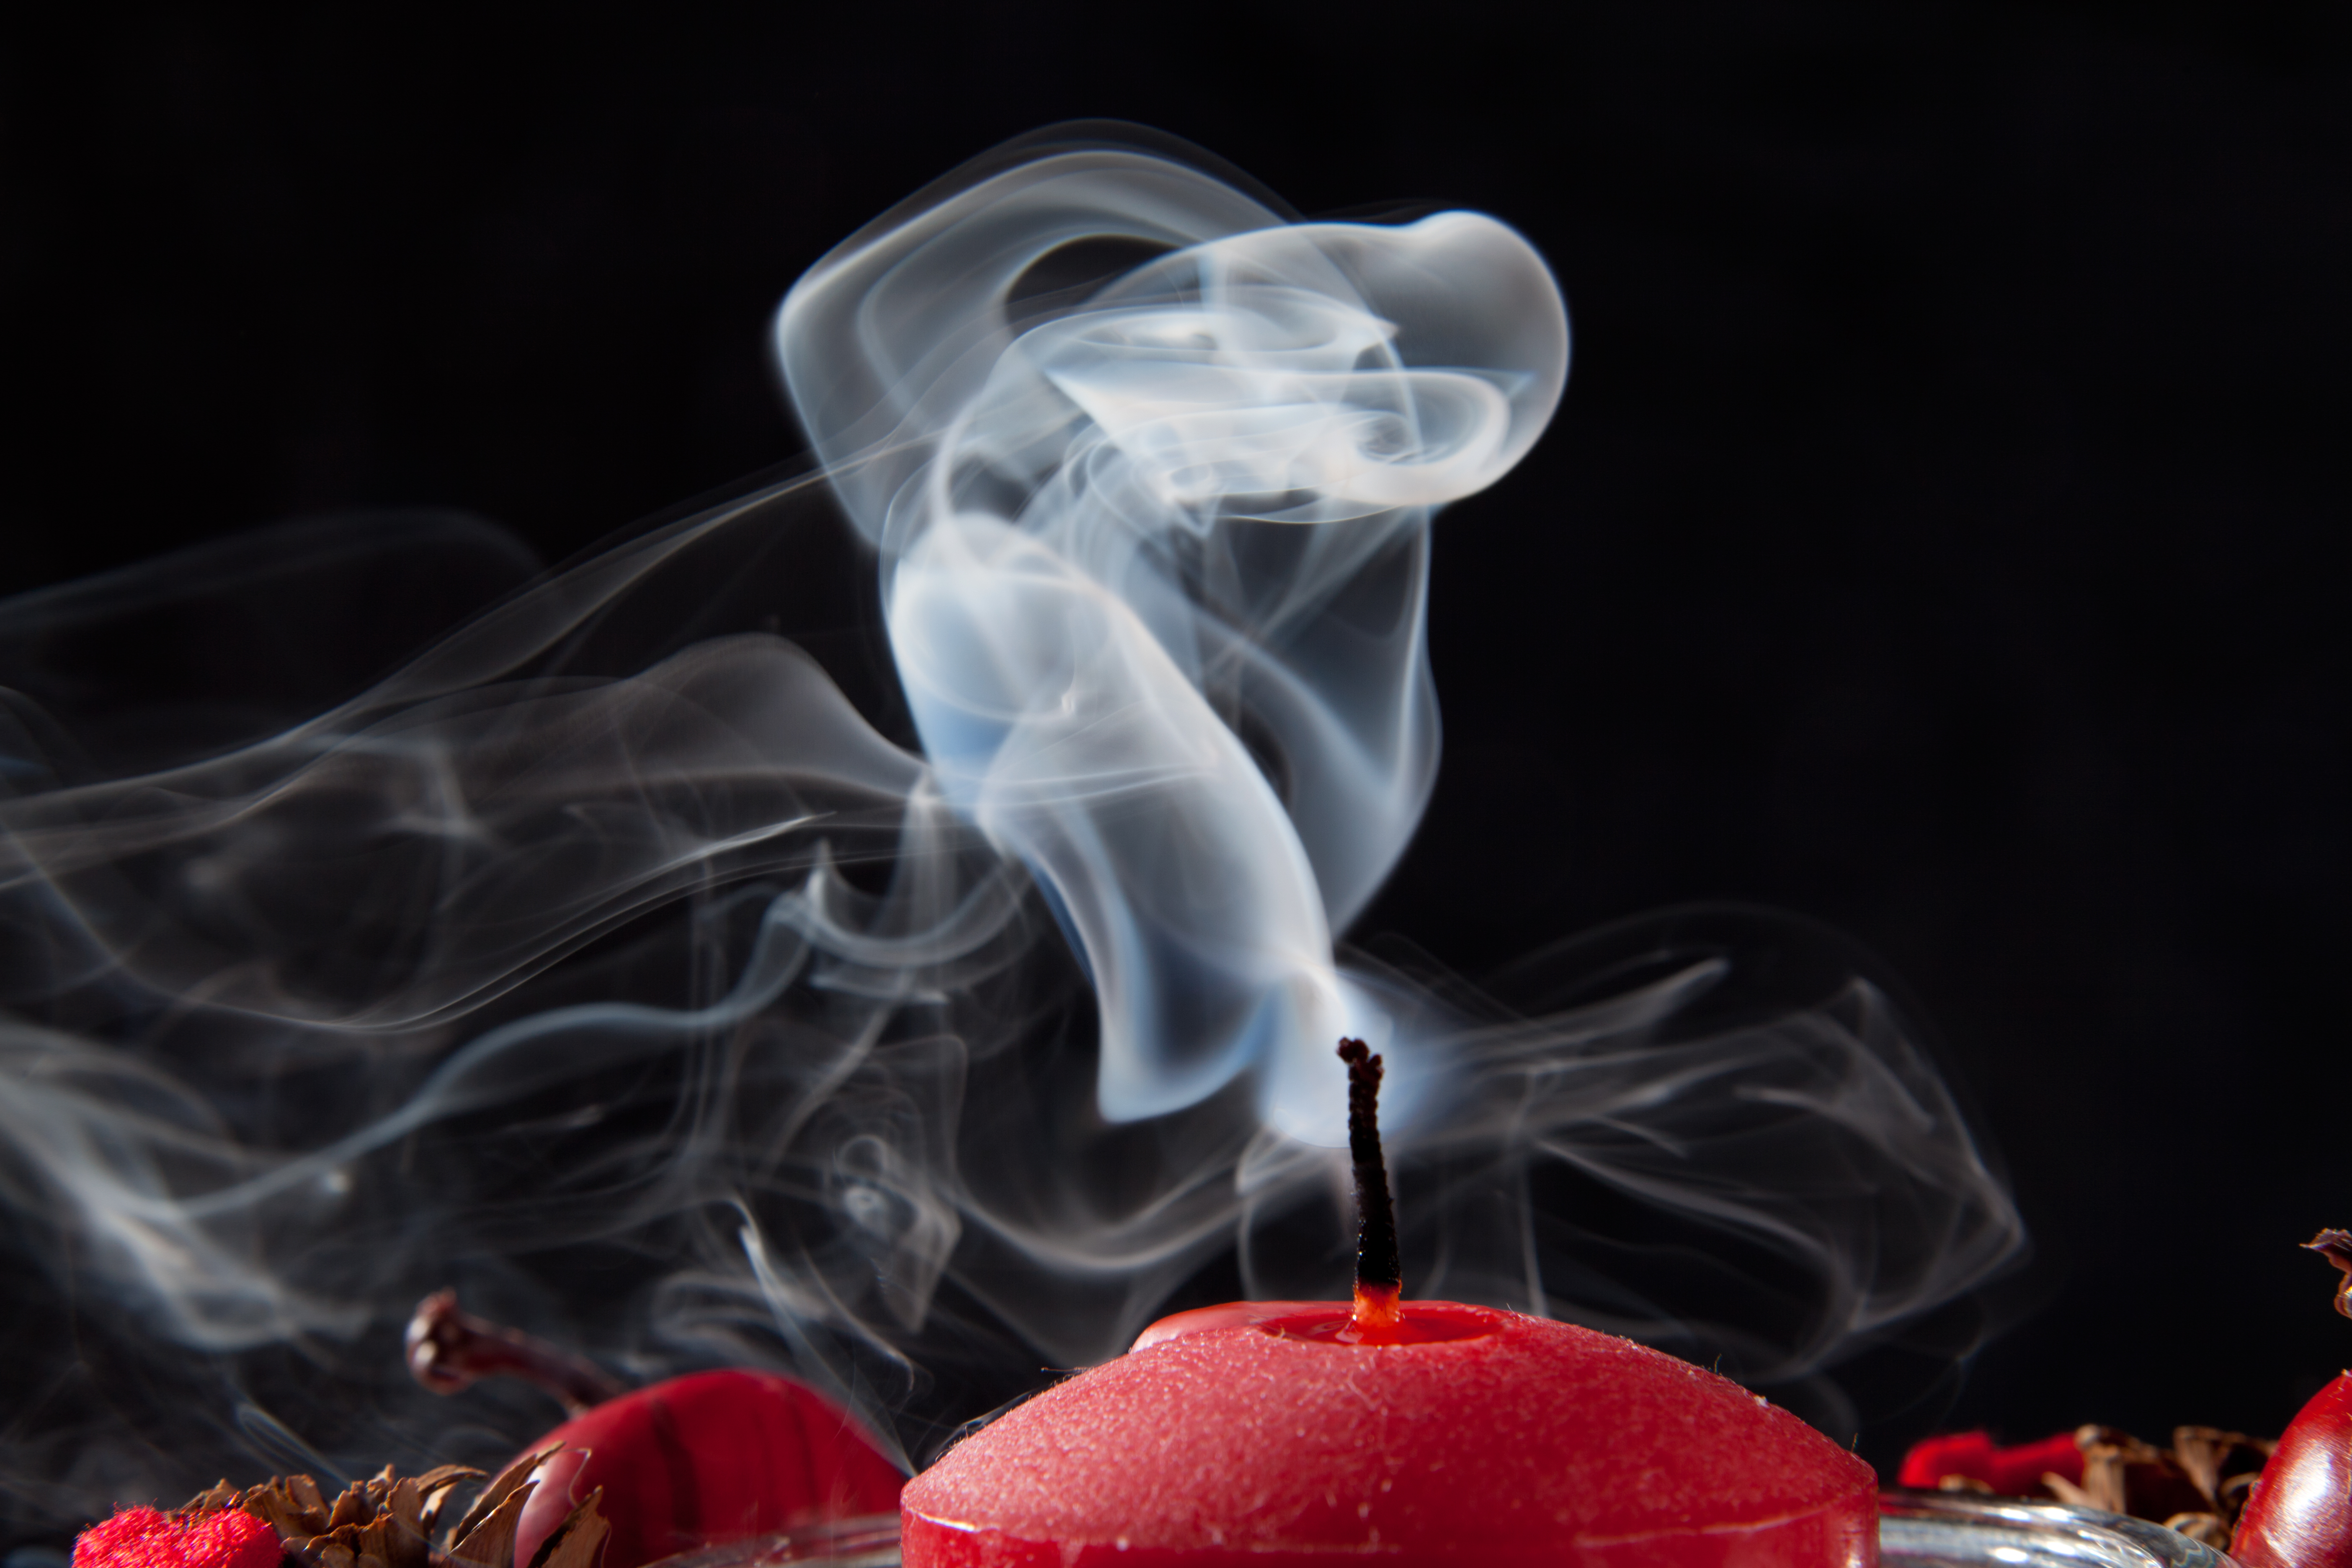 Smoking Candle by Atkelar on DeviantArt for Candle Smoke Photography  565ane